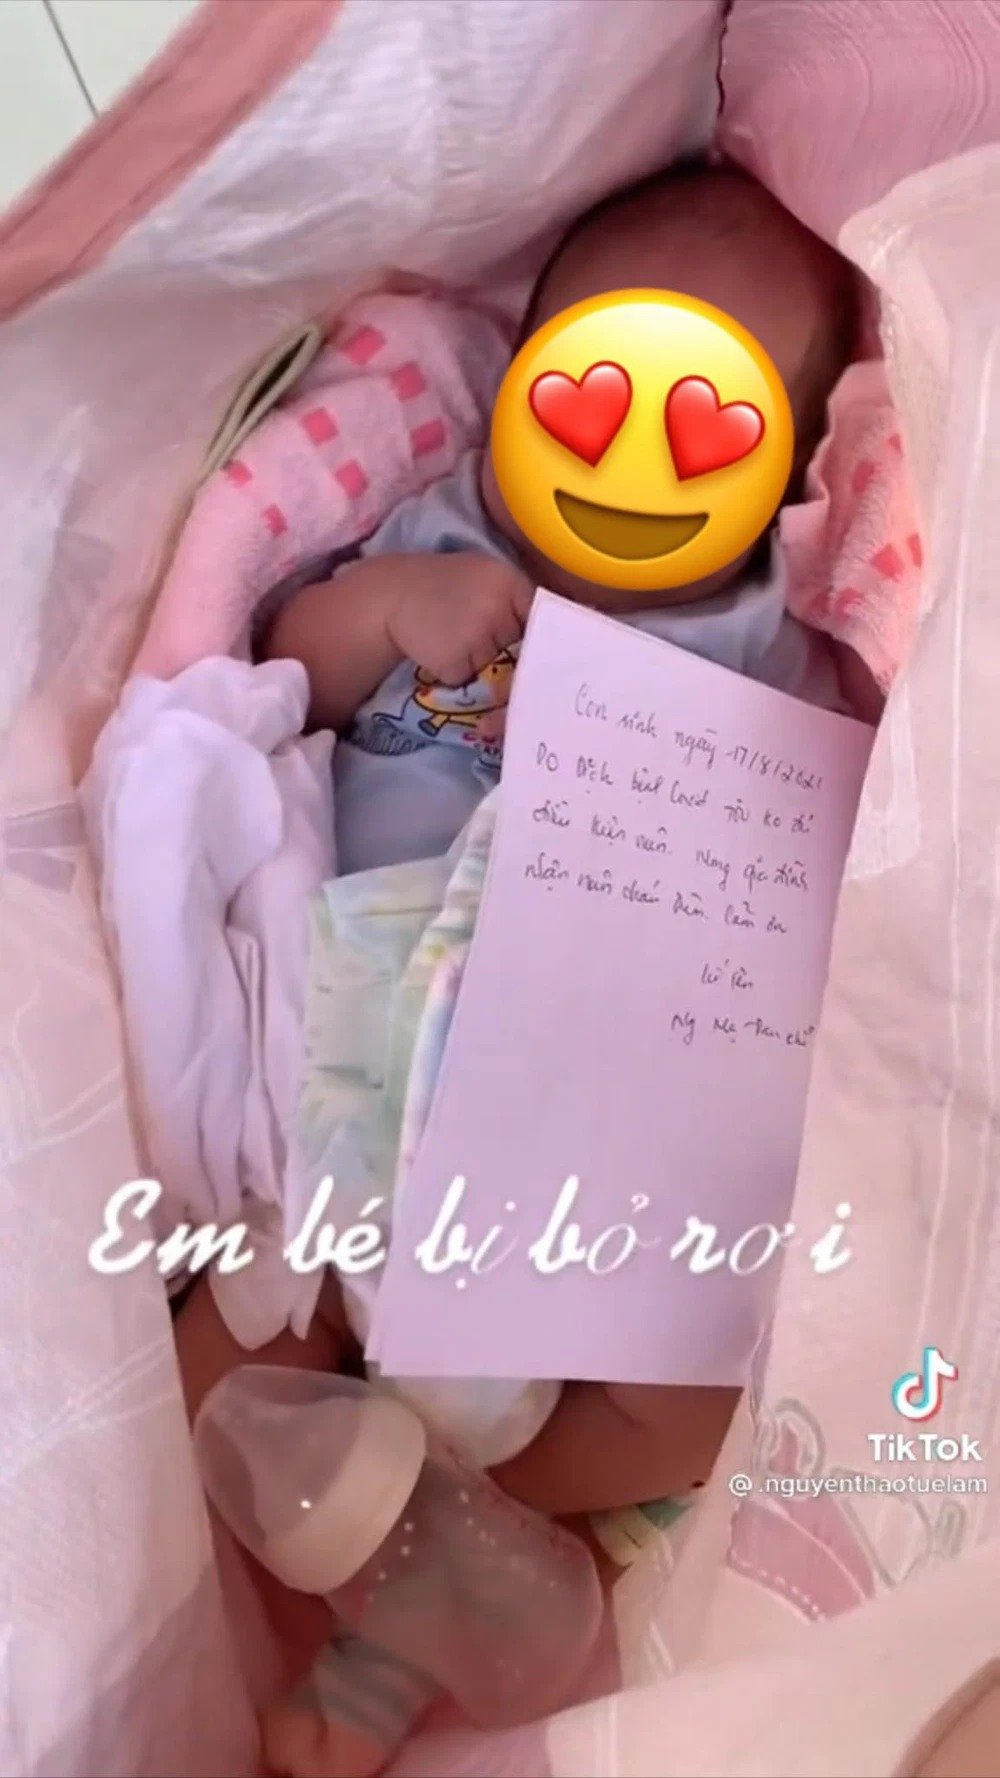 Newborn baby lying 'in a bag', attached with a 'painful' letter, but the ending is surprising 1